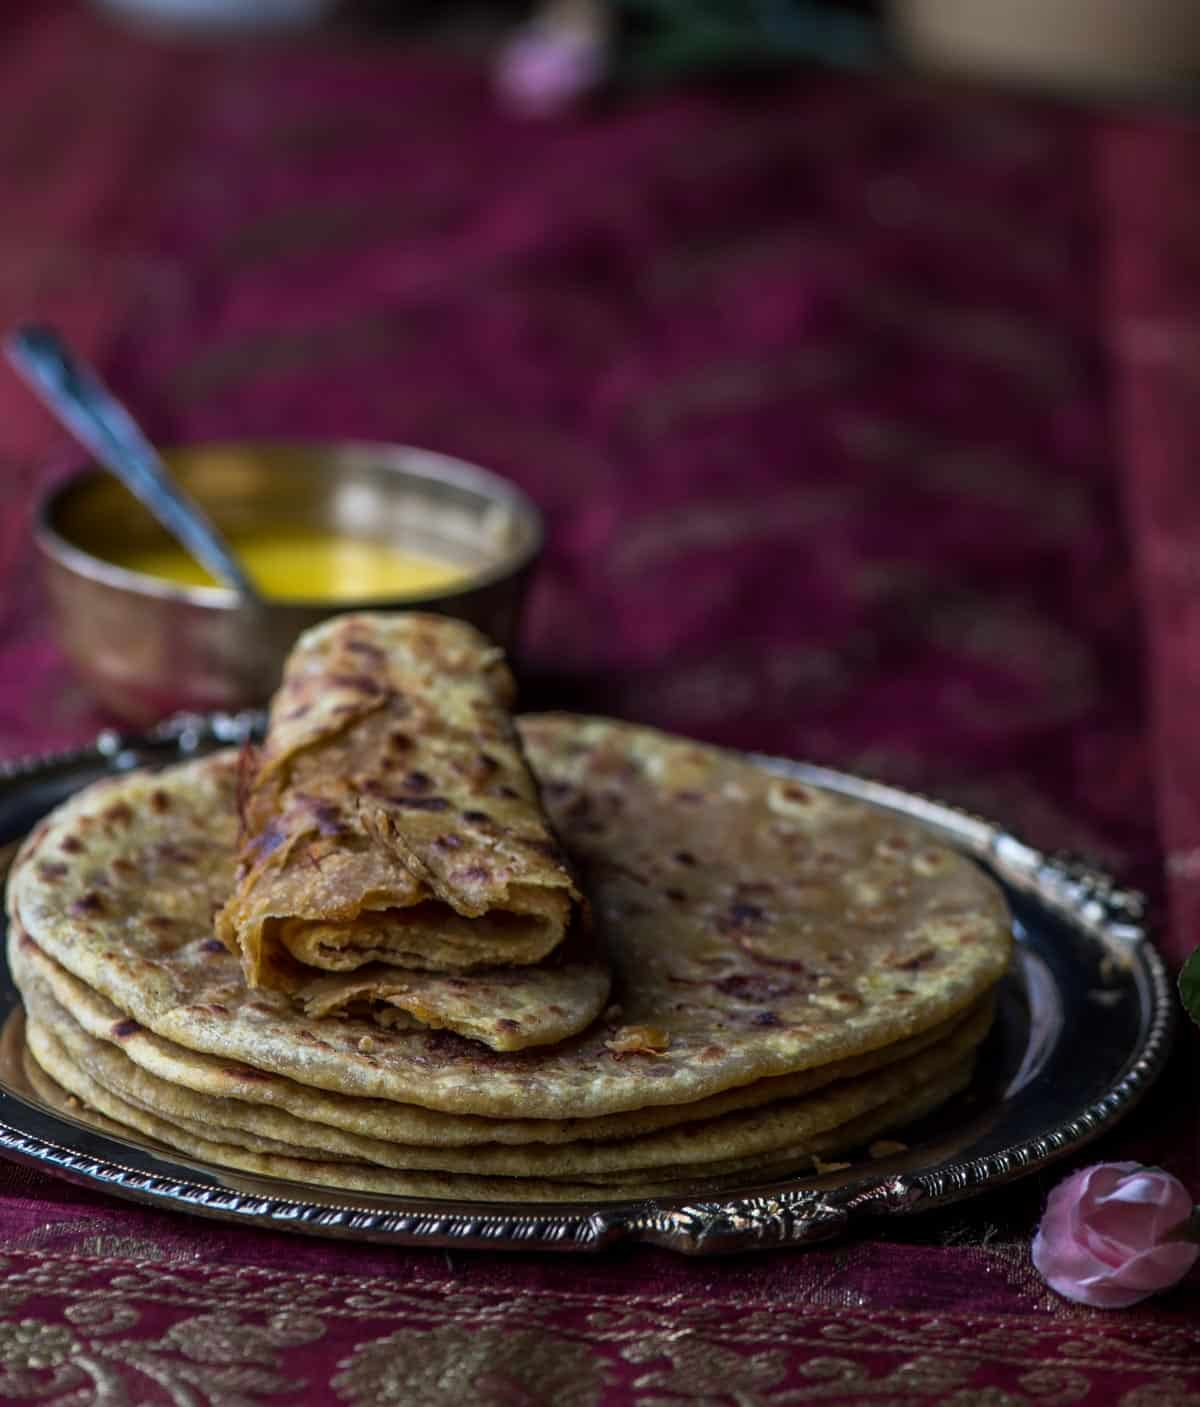 Eat Whole wheat puran poli guilt free! Though not as flaky as the one made with maida (all purpose flour), it is still as delicious.